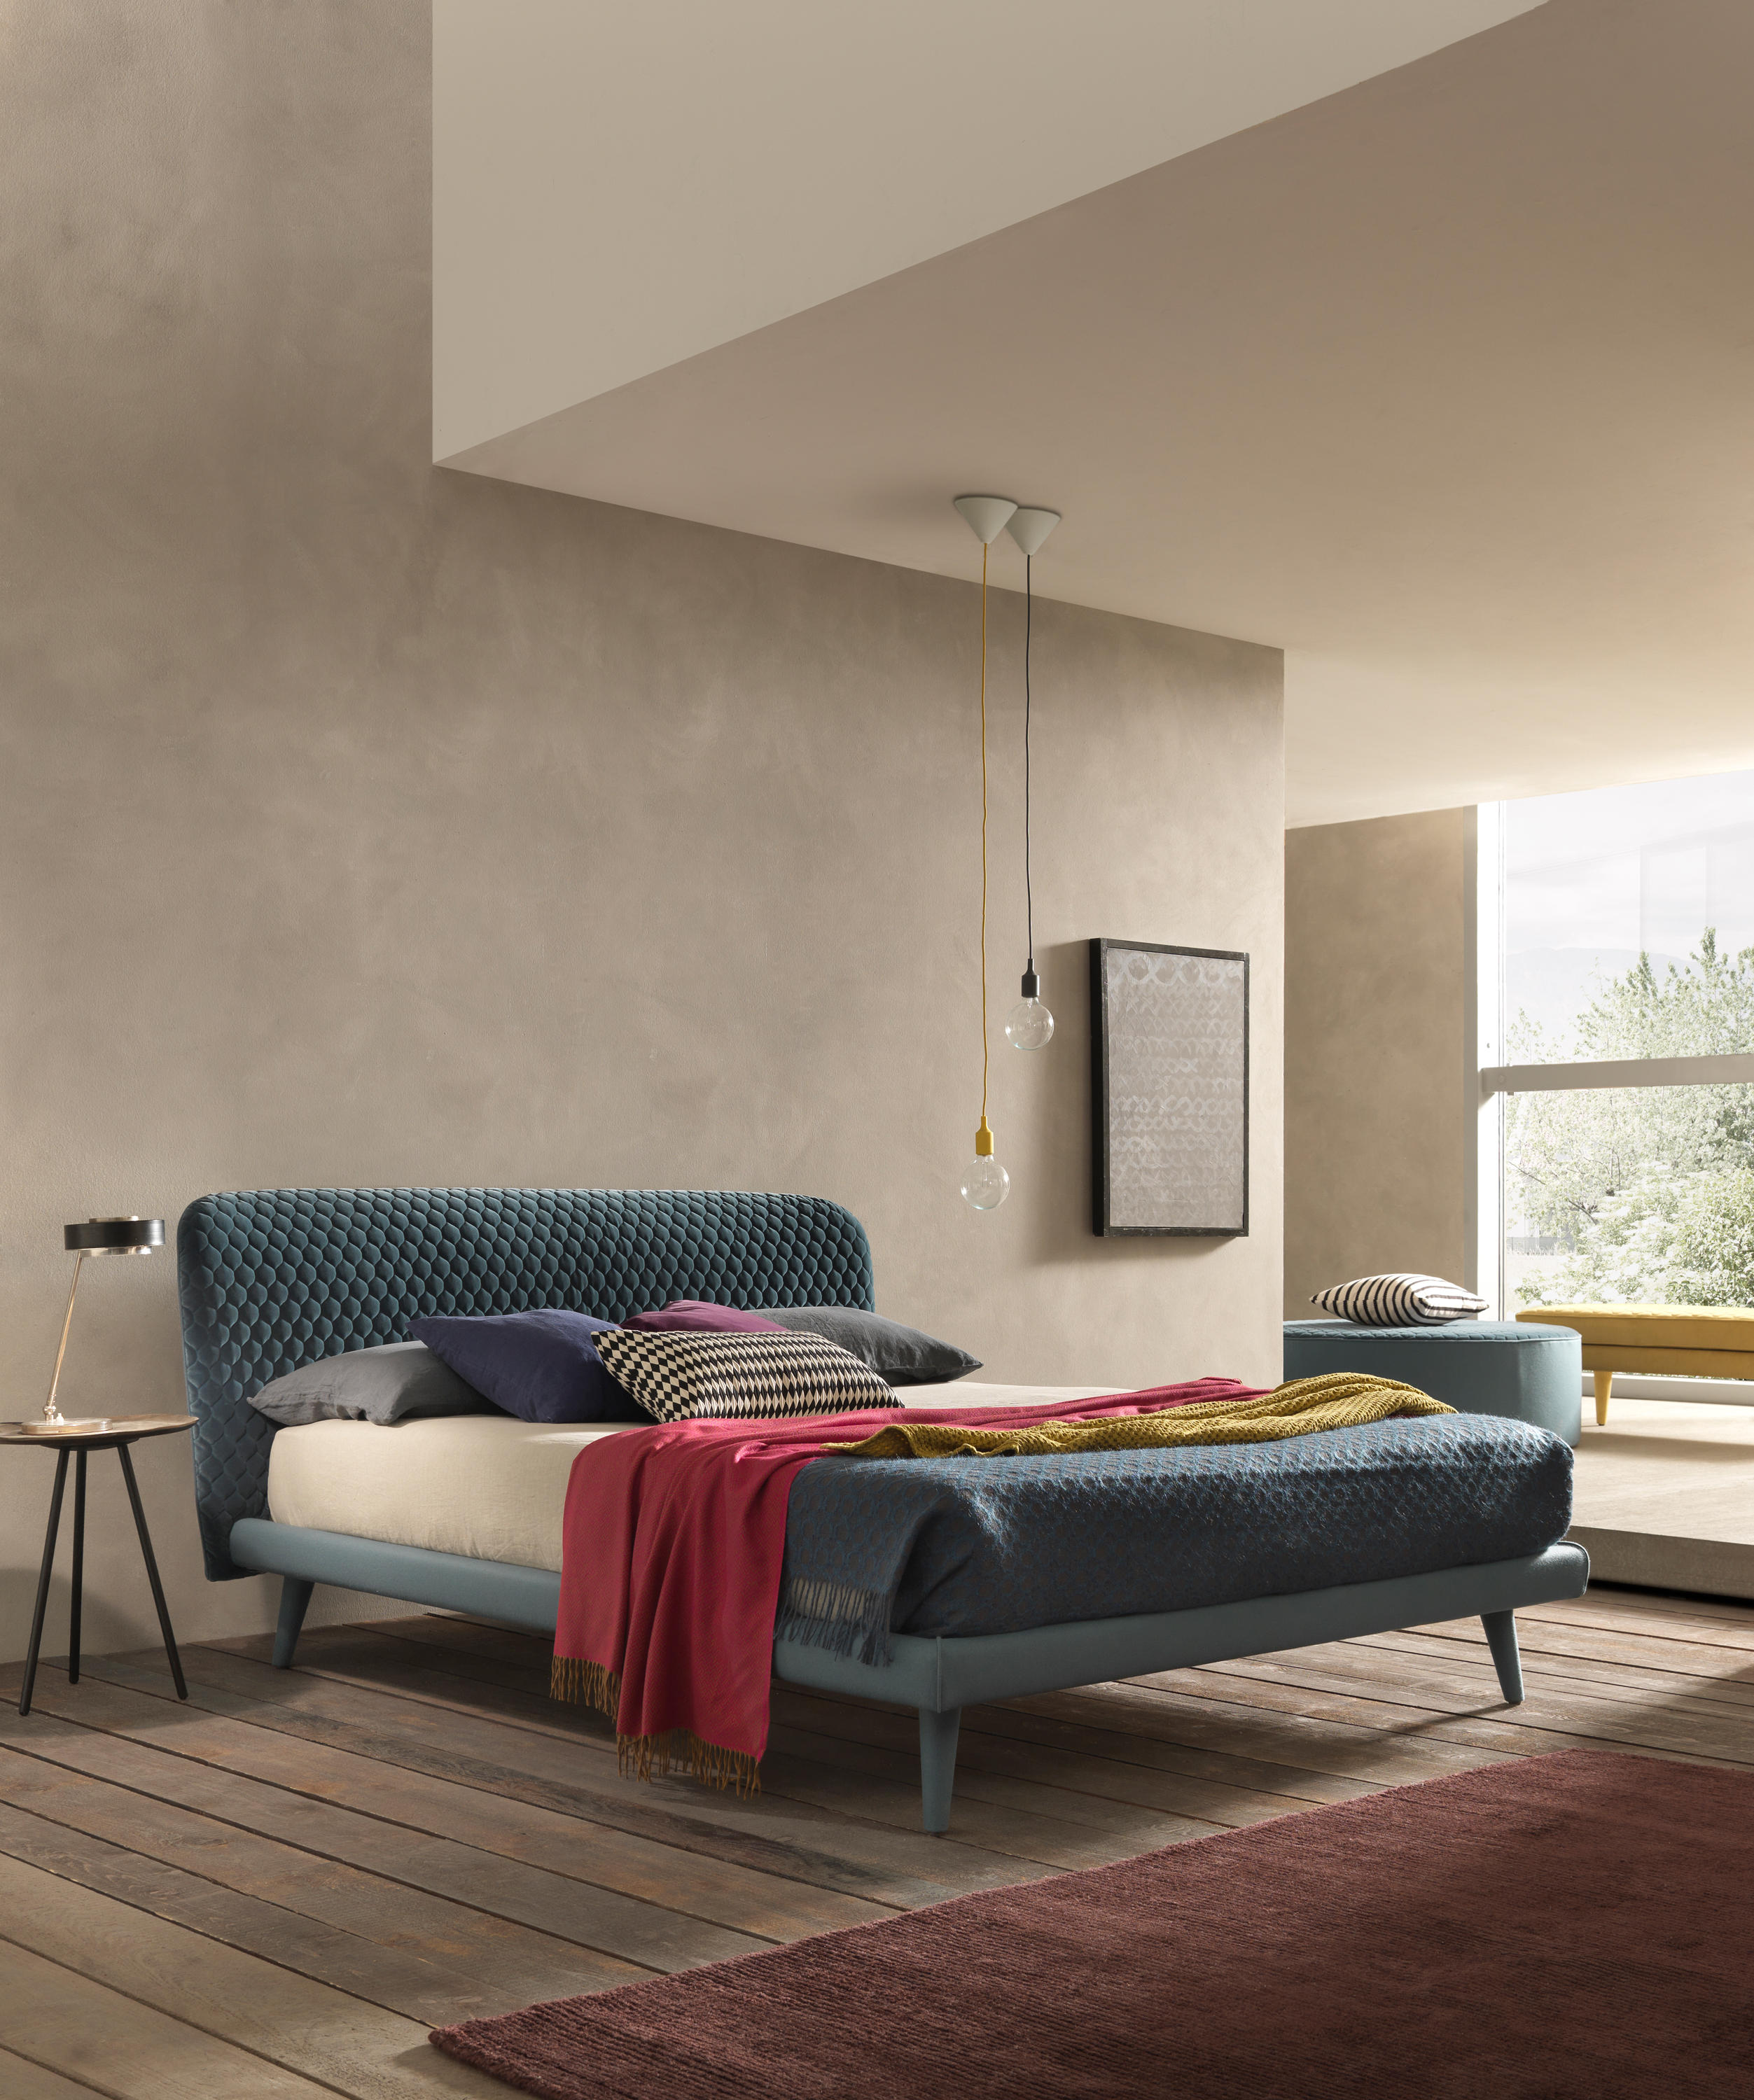 Corolle Double Beds From Bolzan Letti Architonic